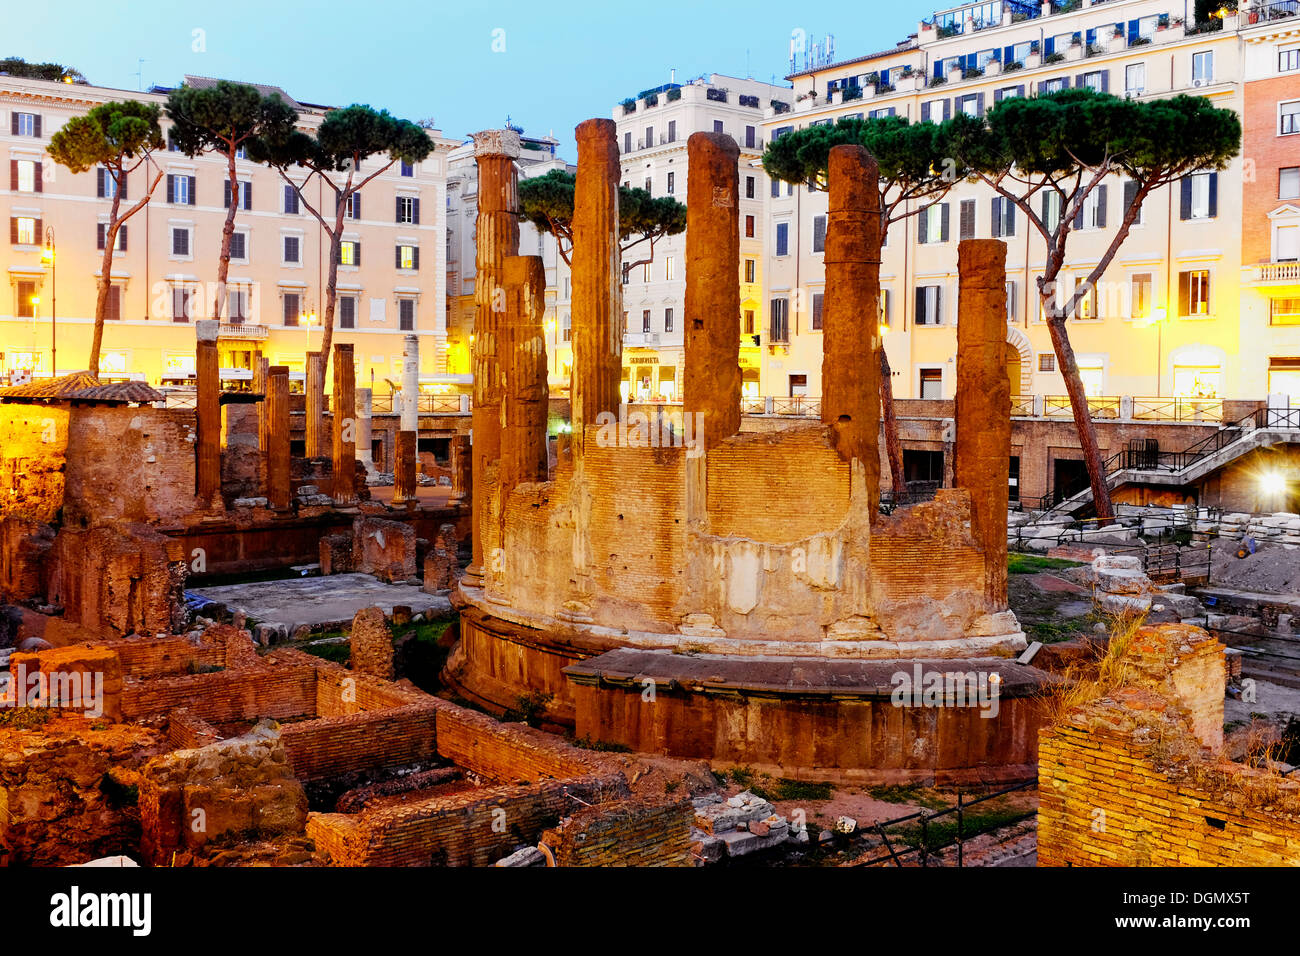 Roman temples in Largo di Torre Argentina, Rome Italy Stock Photo